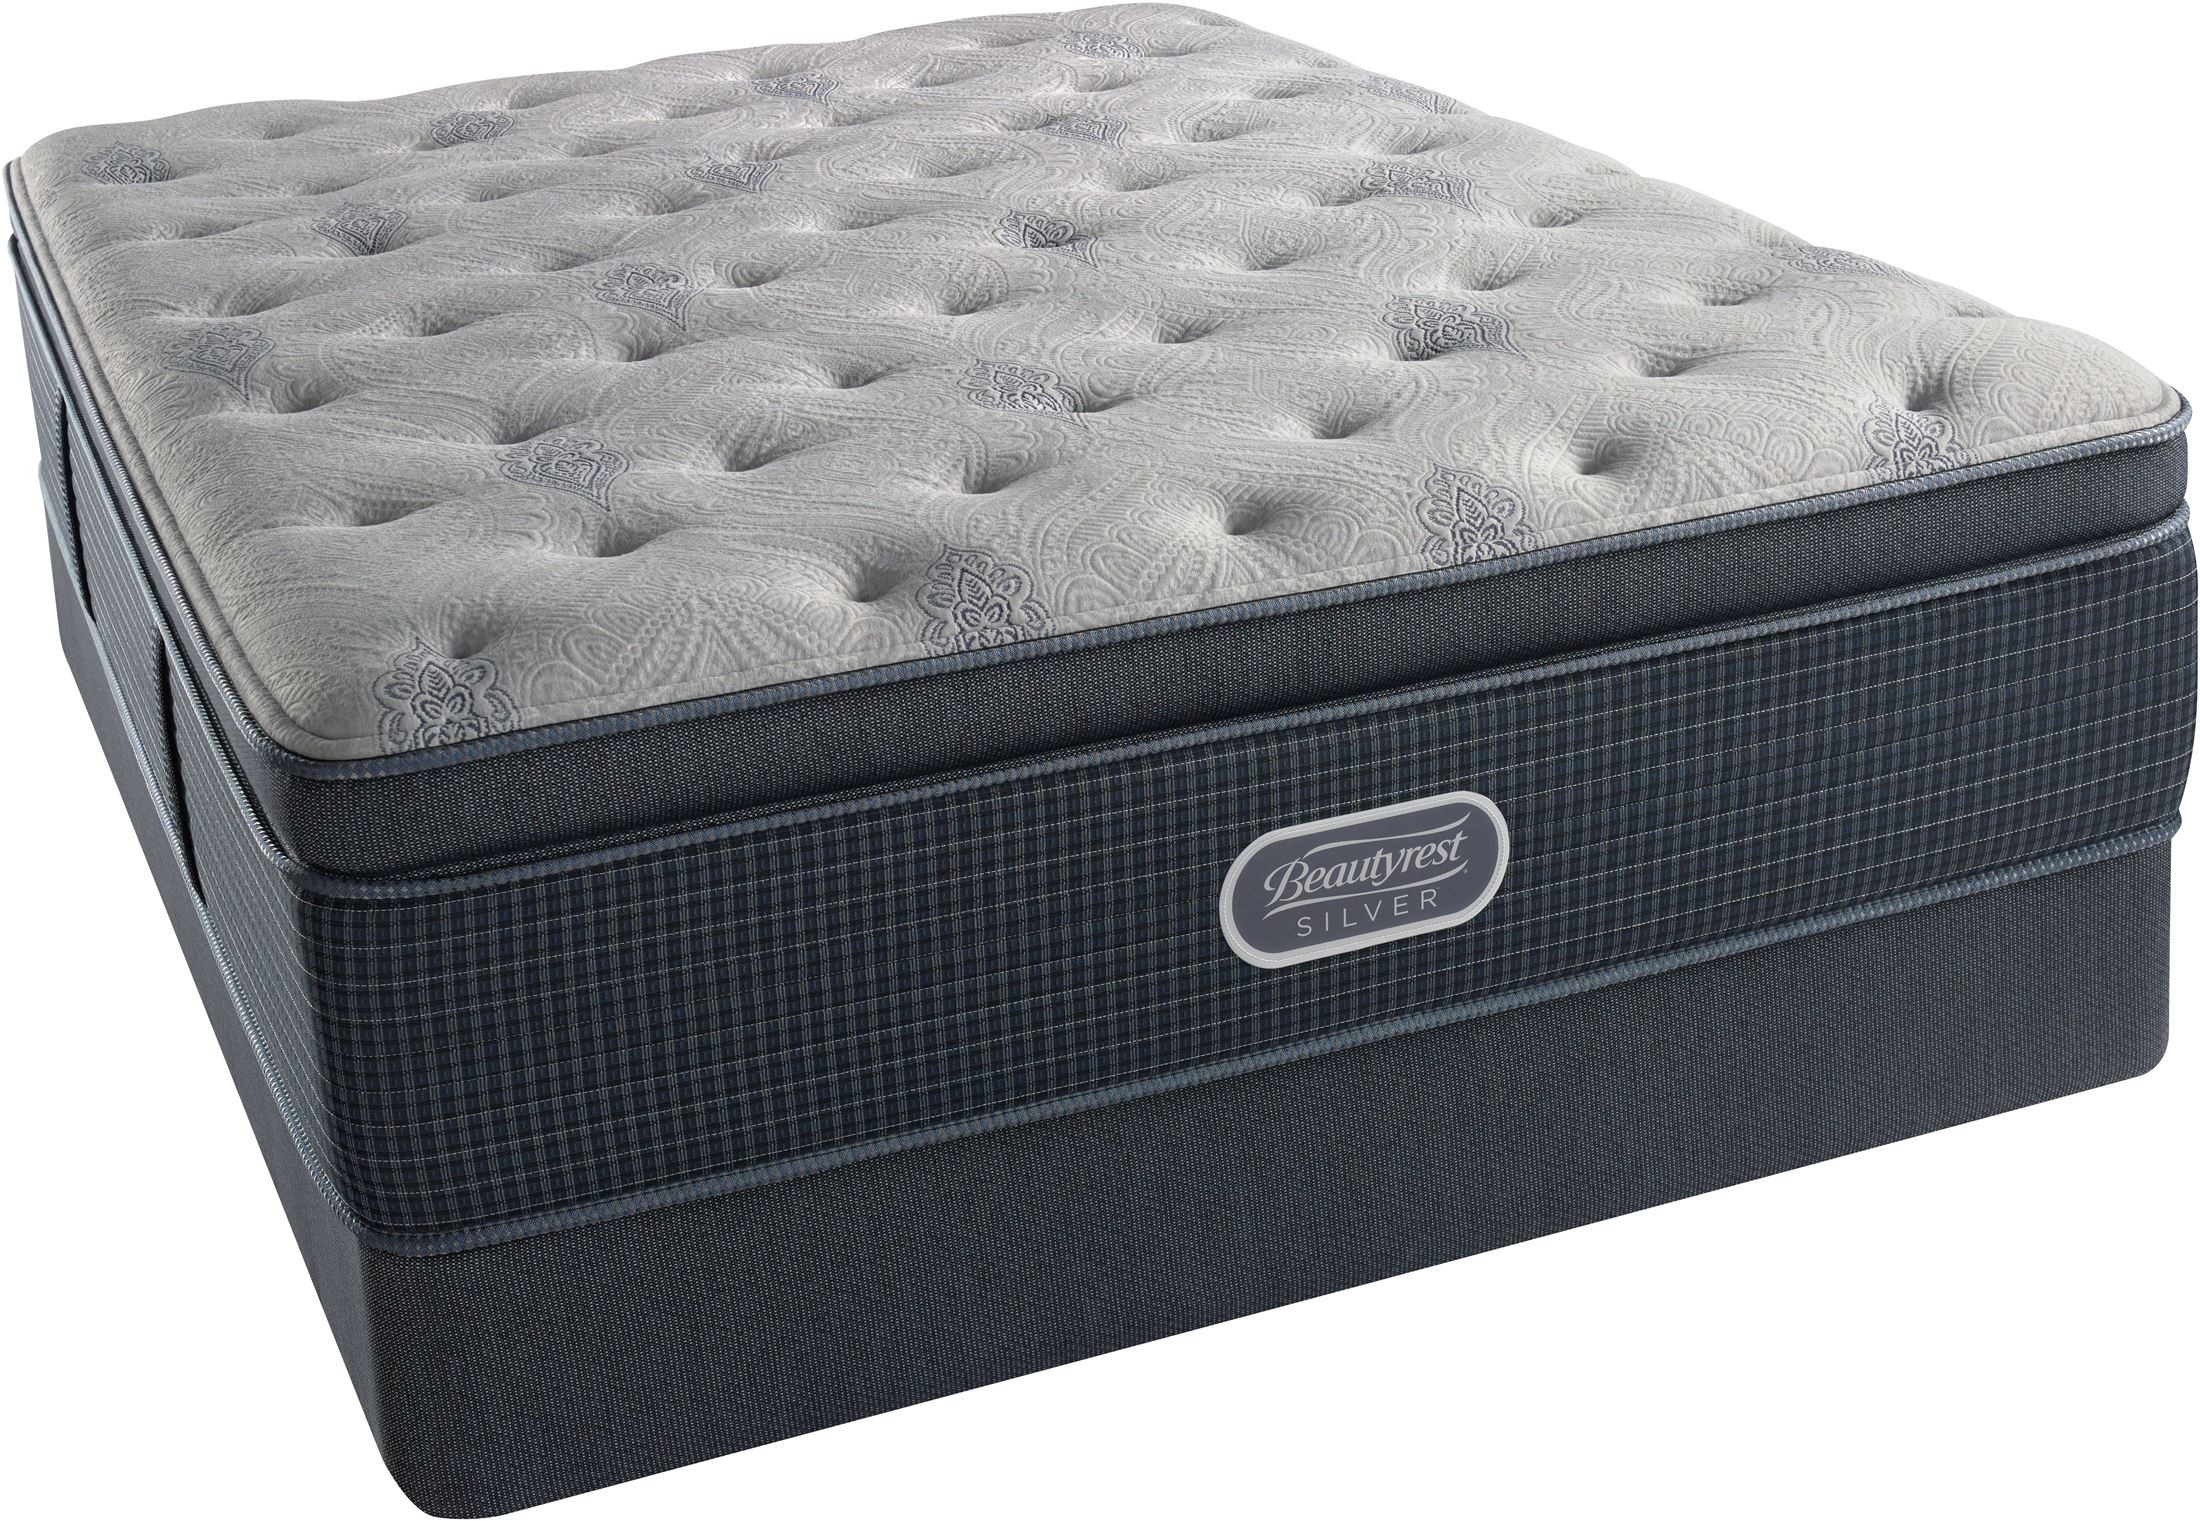 Beautyrest Recharge Silver Luxury Firm Super Pillow Top